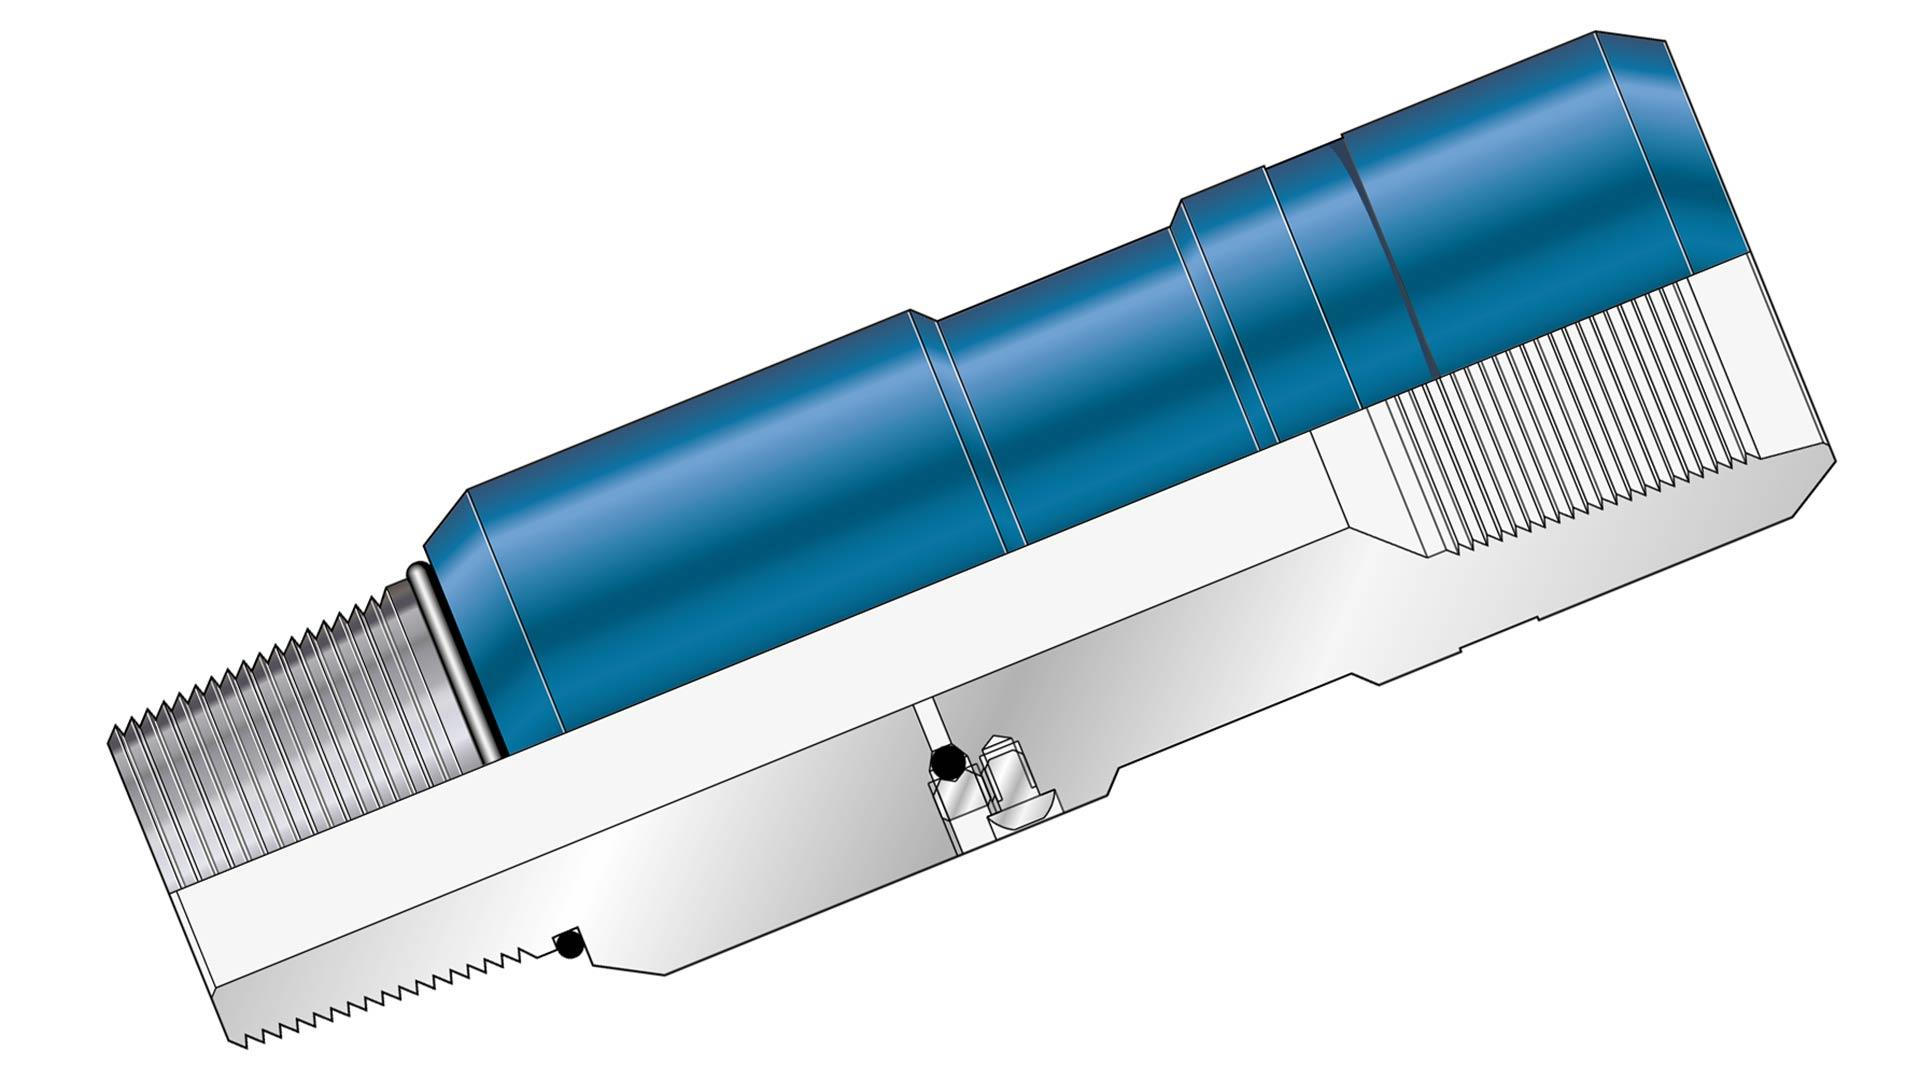 A render of a coiled tubing bleed-off sub